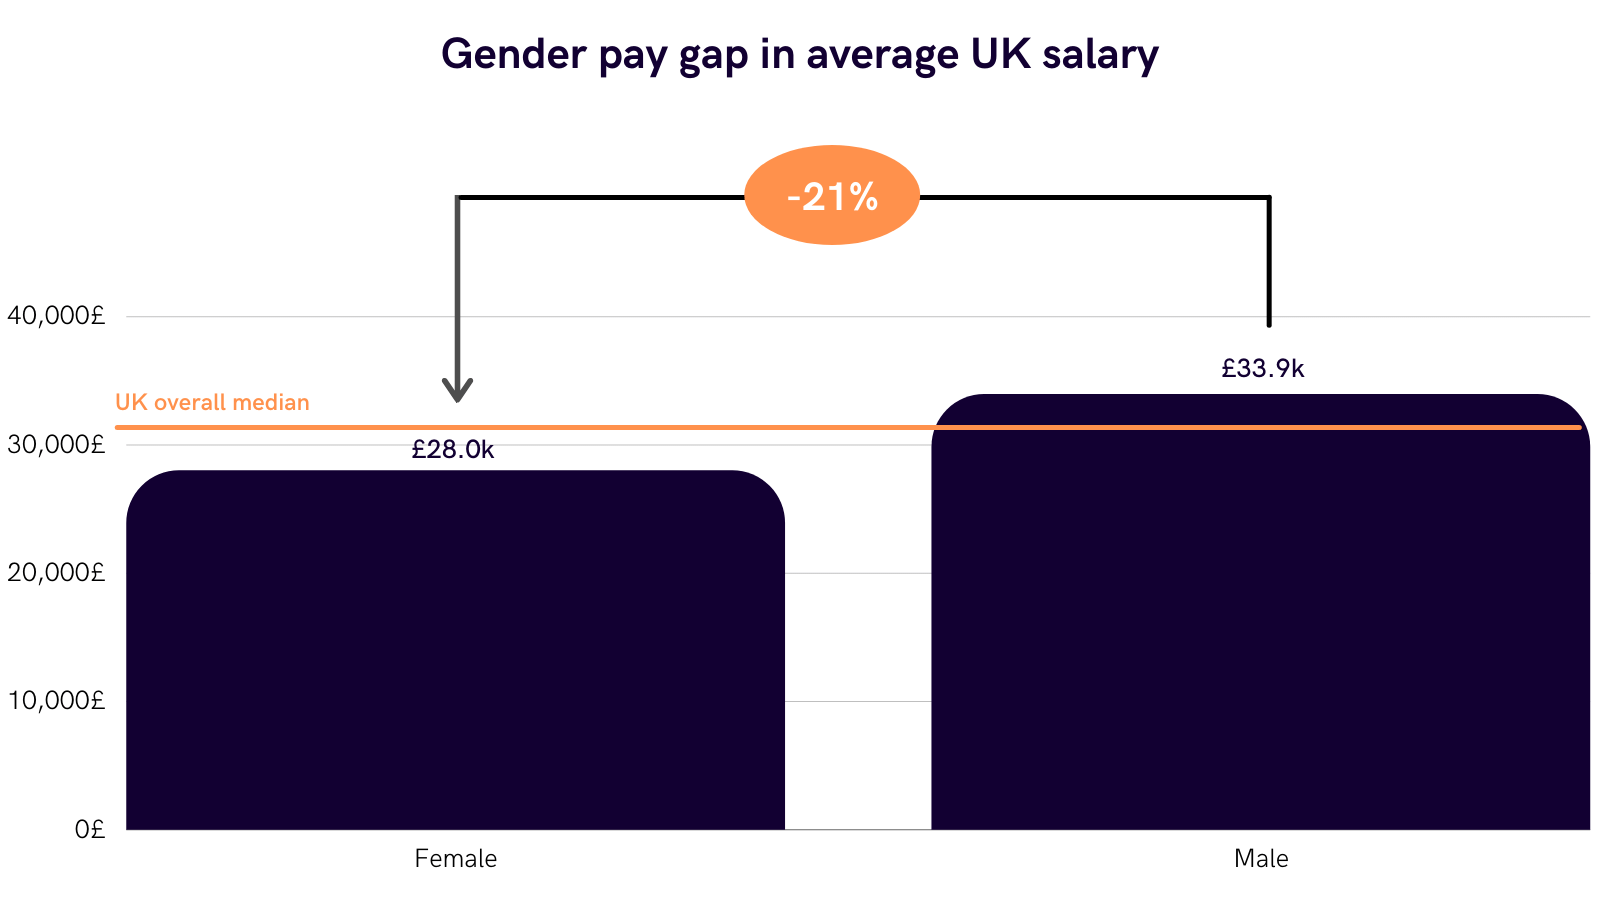 There is a 21% gap between the average salaries of men and women in the UK